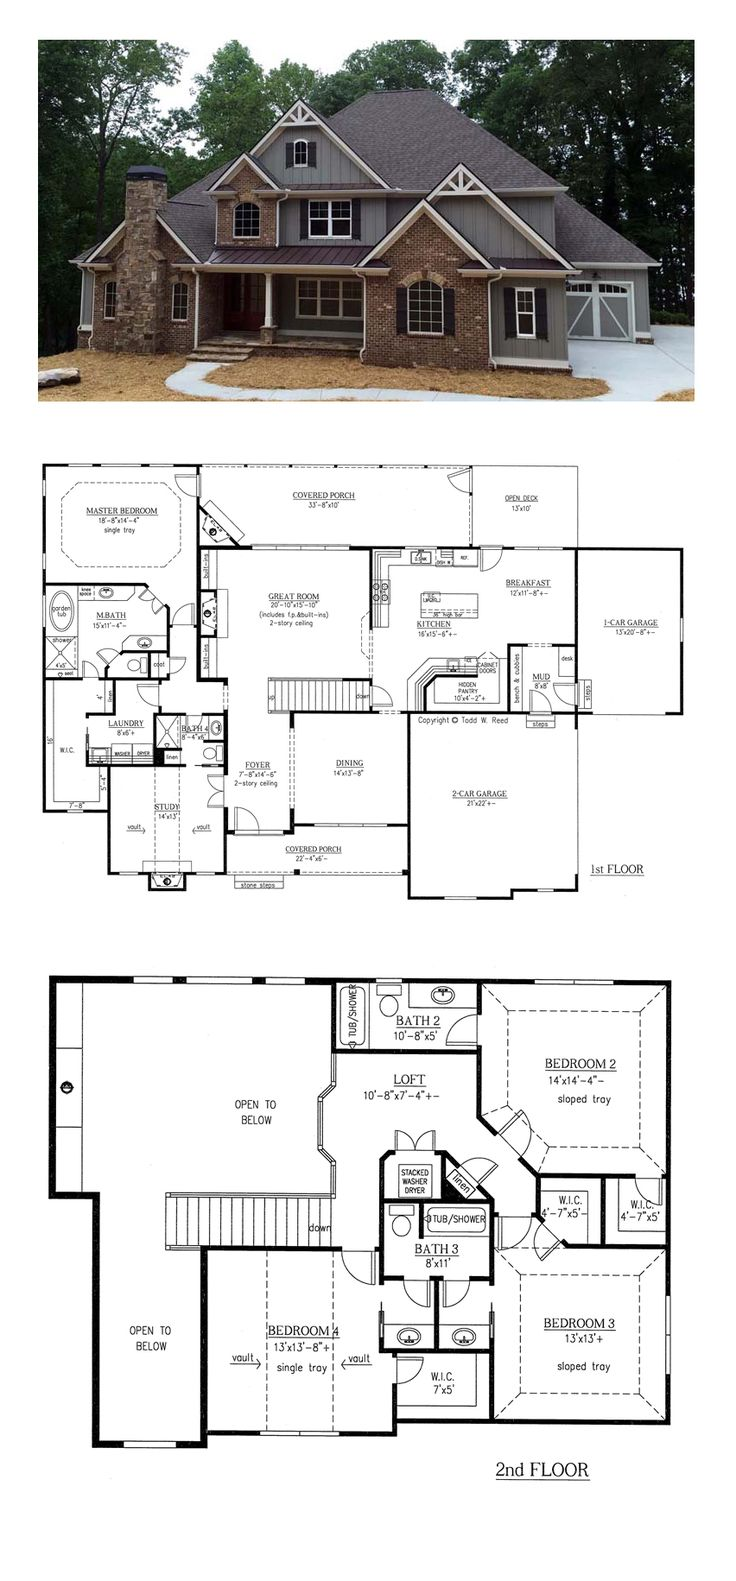 Uncategorized Floor Plan Ideas best 25 floor plans ideas on pinterest house french country plan 50263 total living area 3290 sq ft